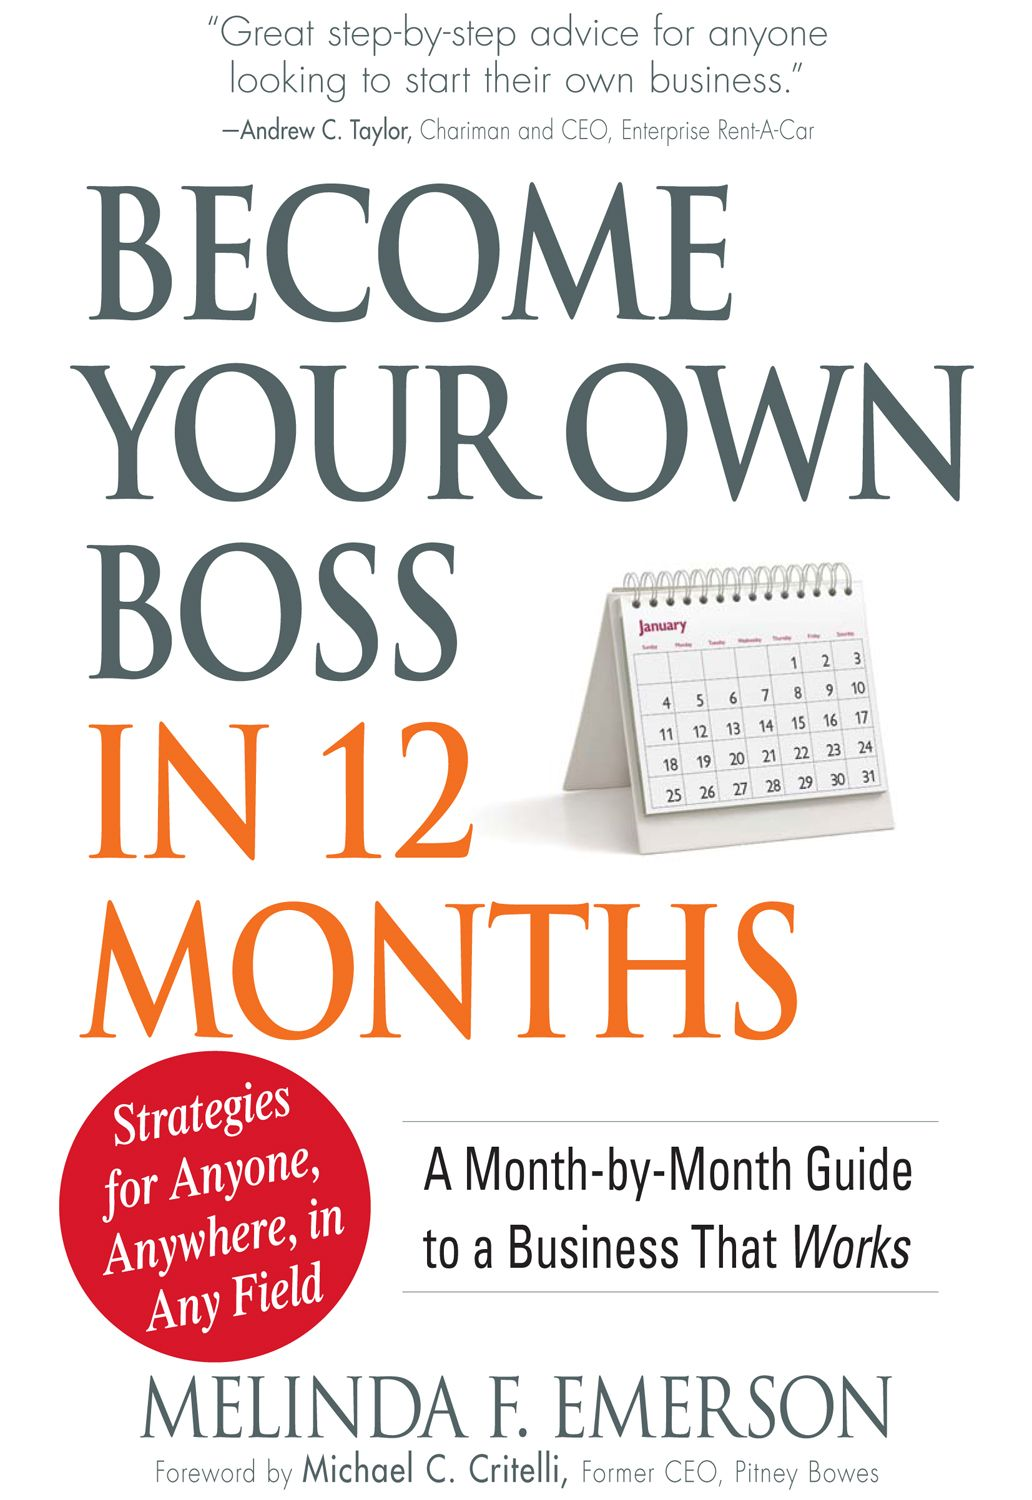 Become Your Own Boss in 12 Months: A Month-by-Month Guide to a Business that Works By: Melinda F. Emerson,Michael C. Critelli